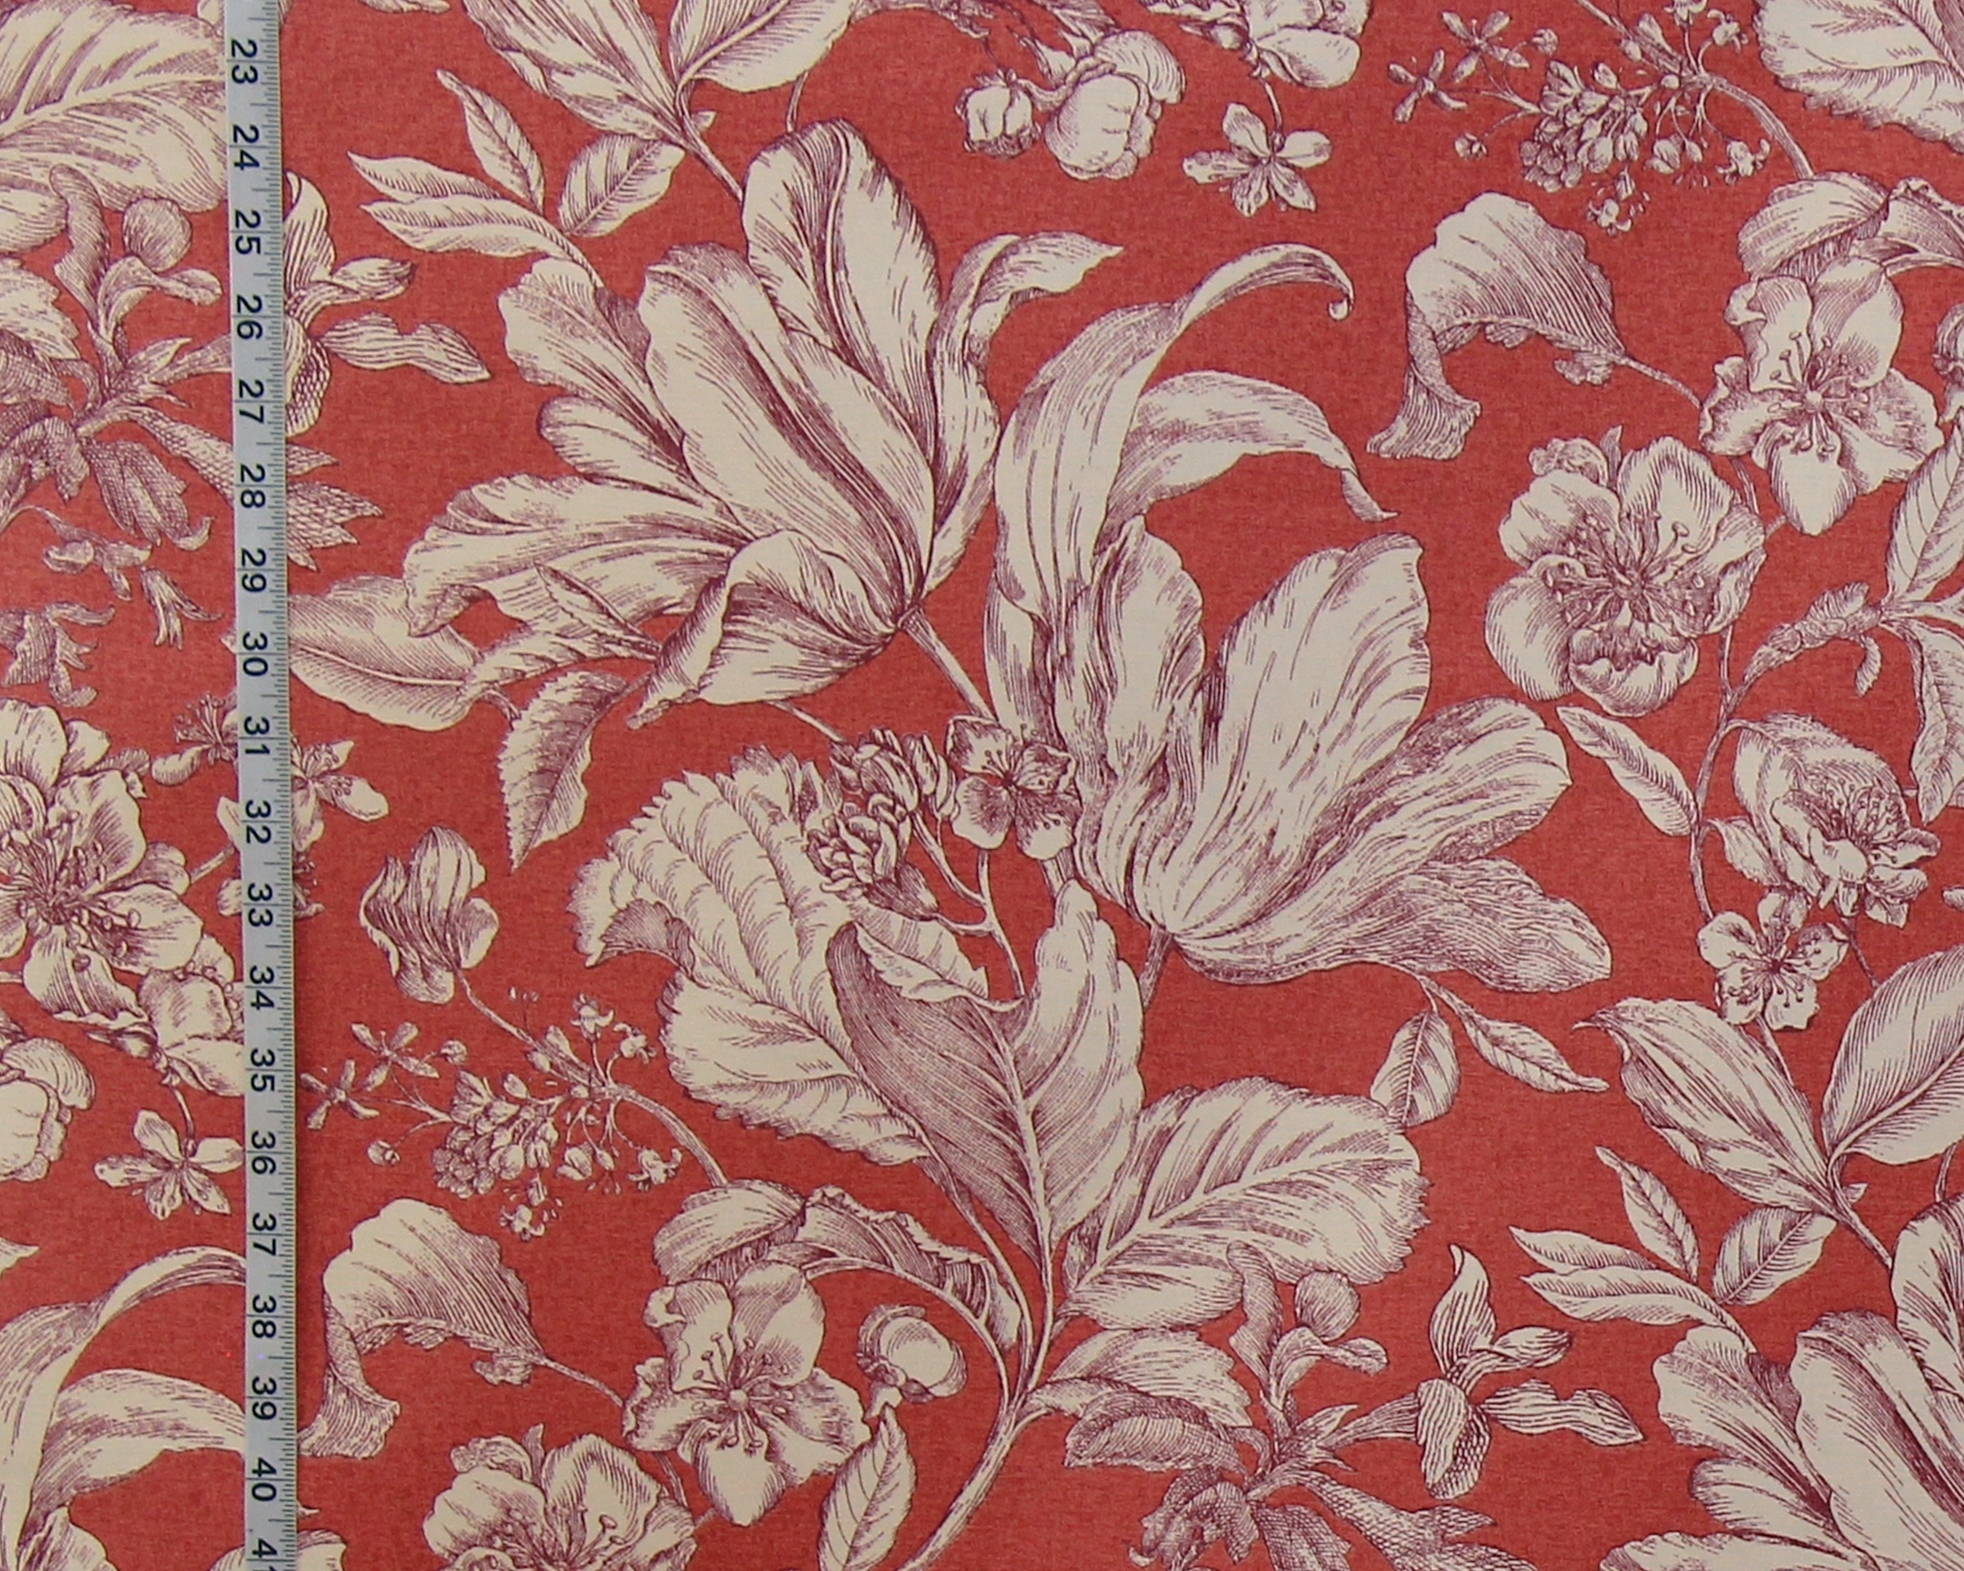 PURPLE TULIP TOILE FABRIC SALMON ROSE